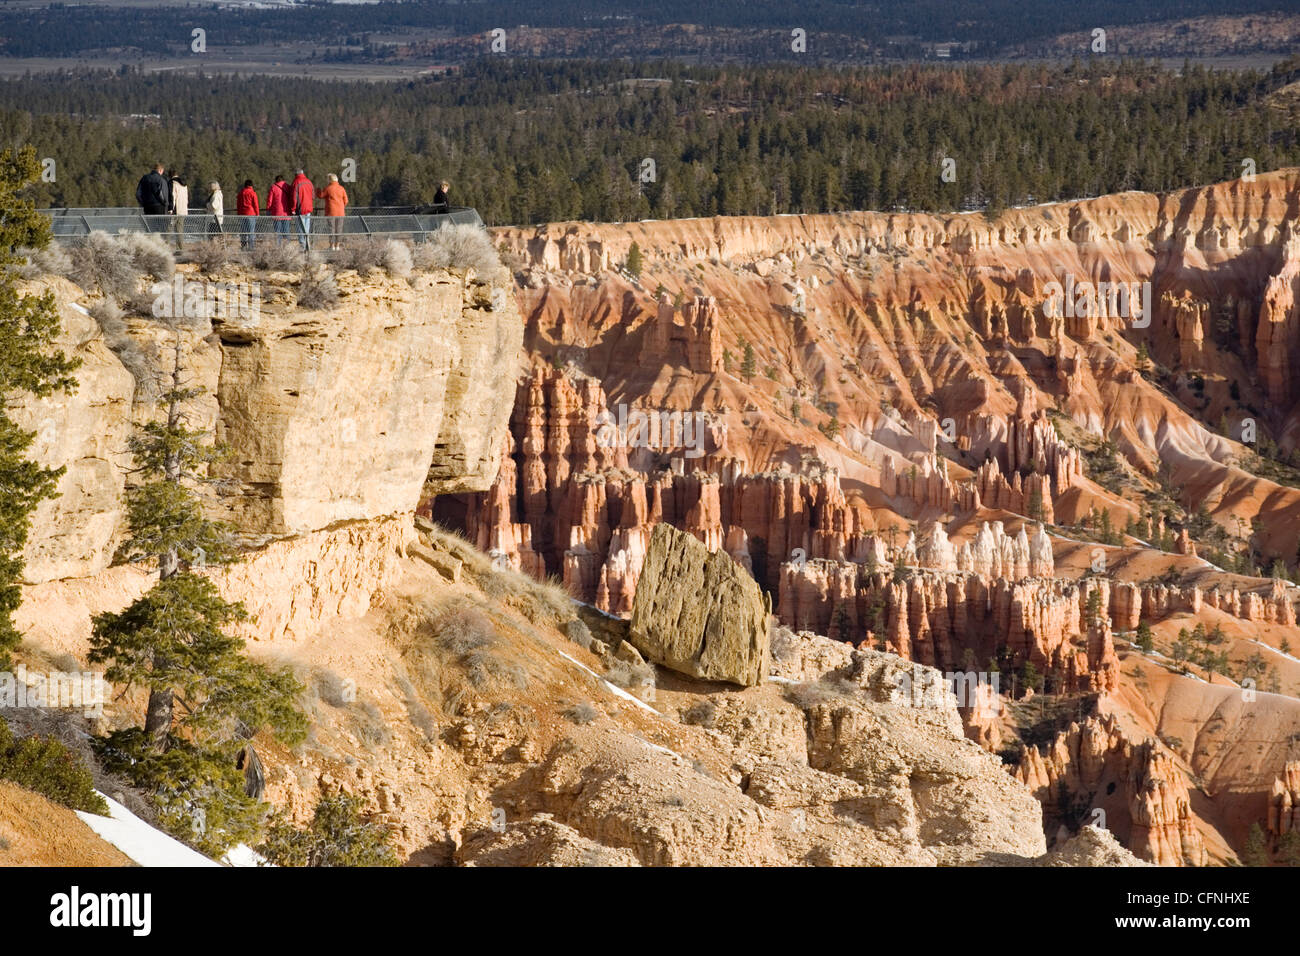 Tourists at viewppoint, Bryce Canyon National Park, Utah, United States of America, North America - Stock Image